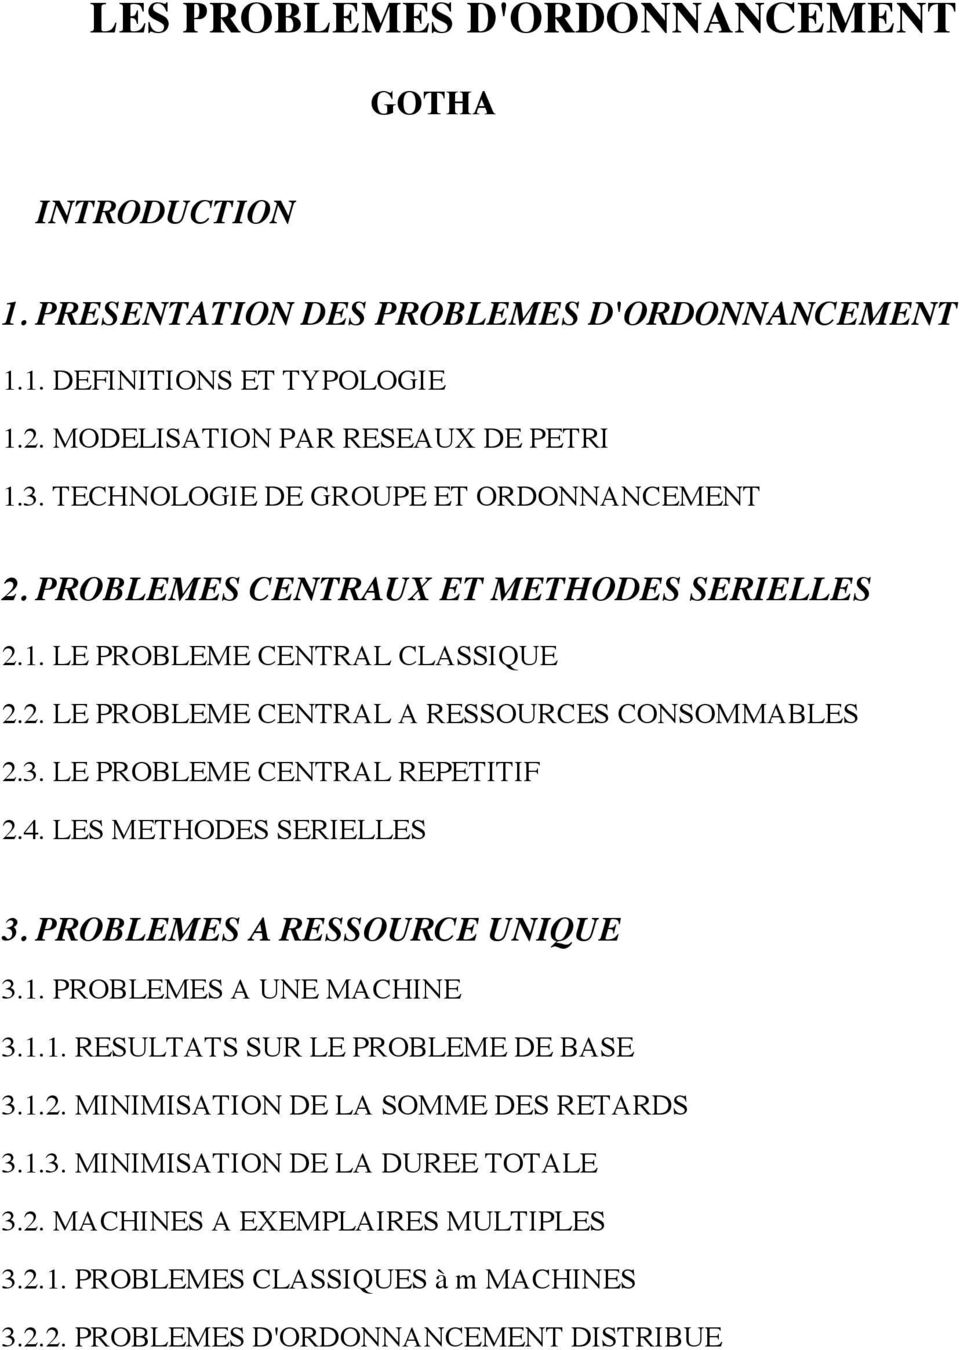 LE PROBLEME CENTRAL REPETITIF 2.4. LES METHODES SERIELLES 3. PROBLEMES A RESSOURCE UNIQUE 3.1. PROBLEMES A UNE MACHINE 3.1.1. RESULTATS SUR LE PROBLEME DE BASE 3.1.2. MINIMISATION DE LA SOMME DES RETARDS 3.